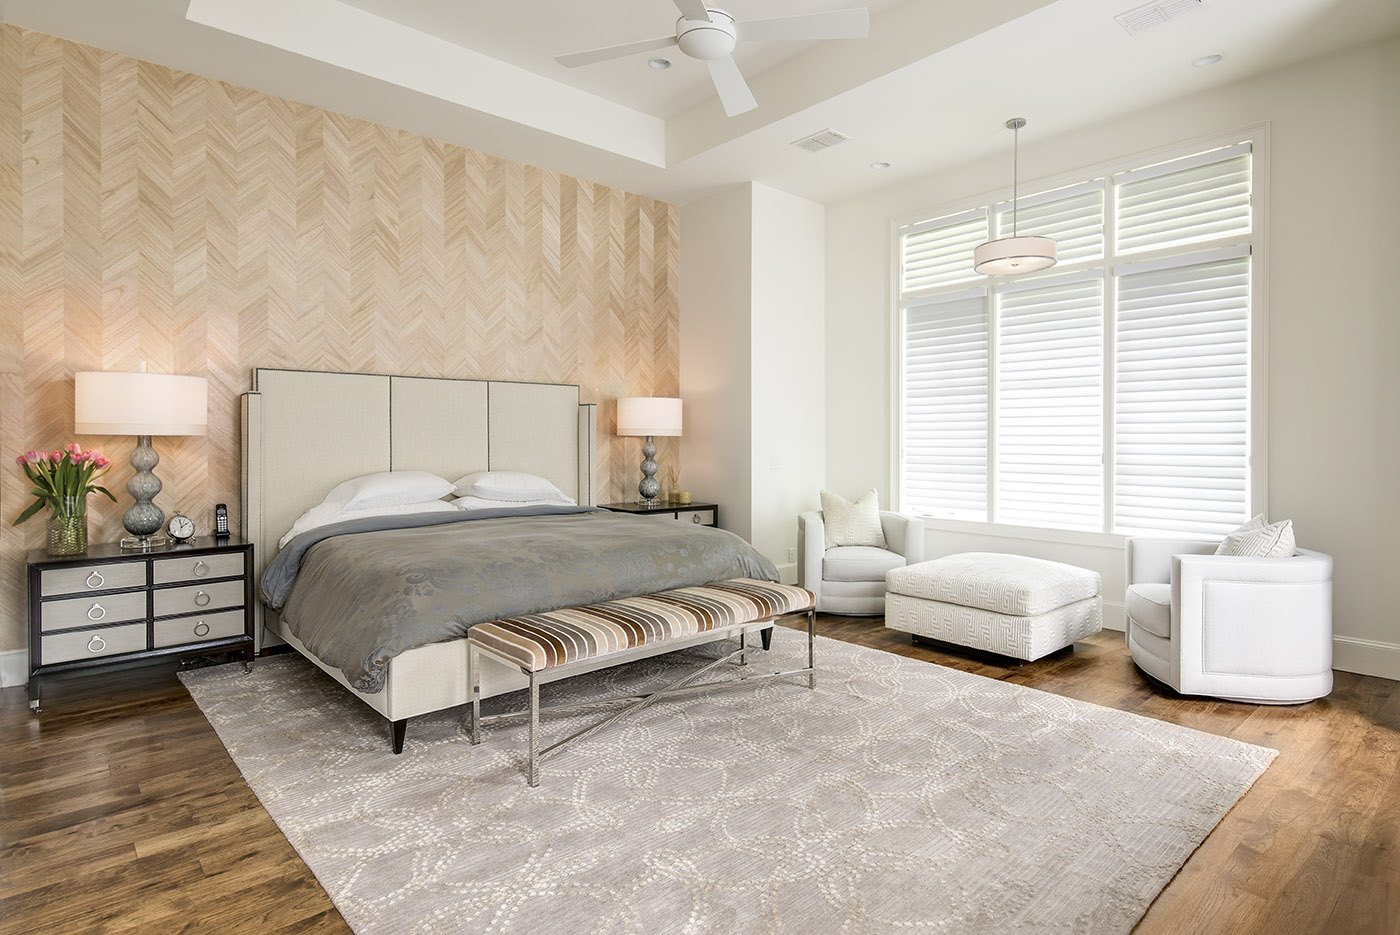 An interior design photo of a contemporary bedroom with wood floors and a grey carpet